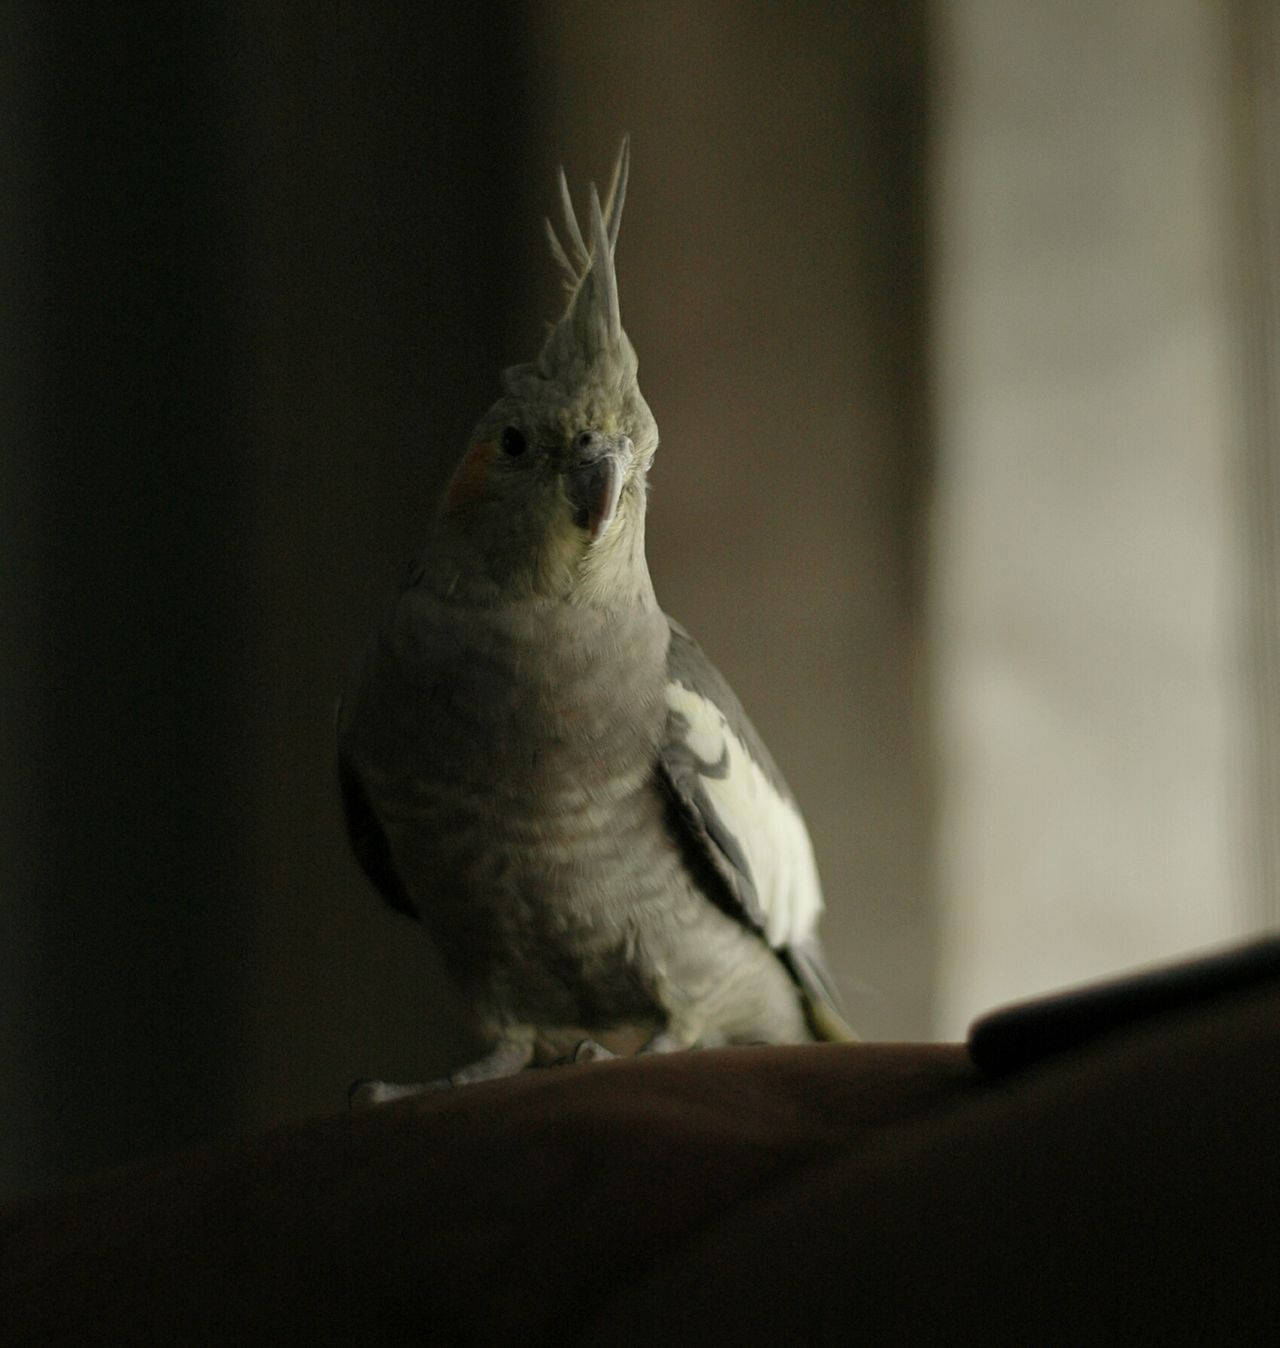 The Purist (no Edit, No Filter) EyeEm Best Shots Mi Pollo Y Yo Relaxing